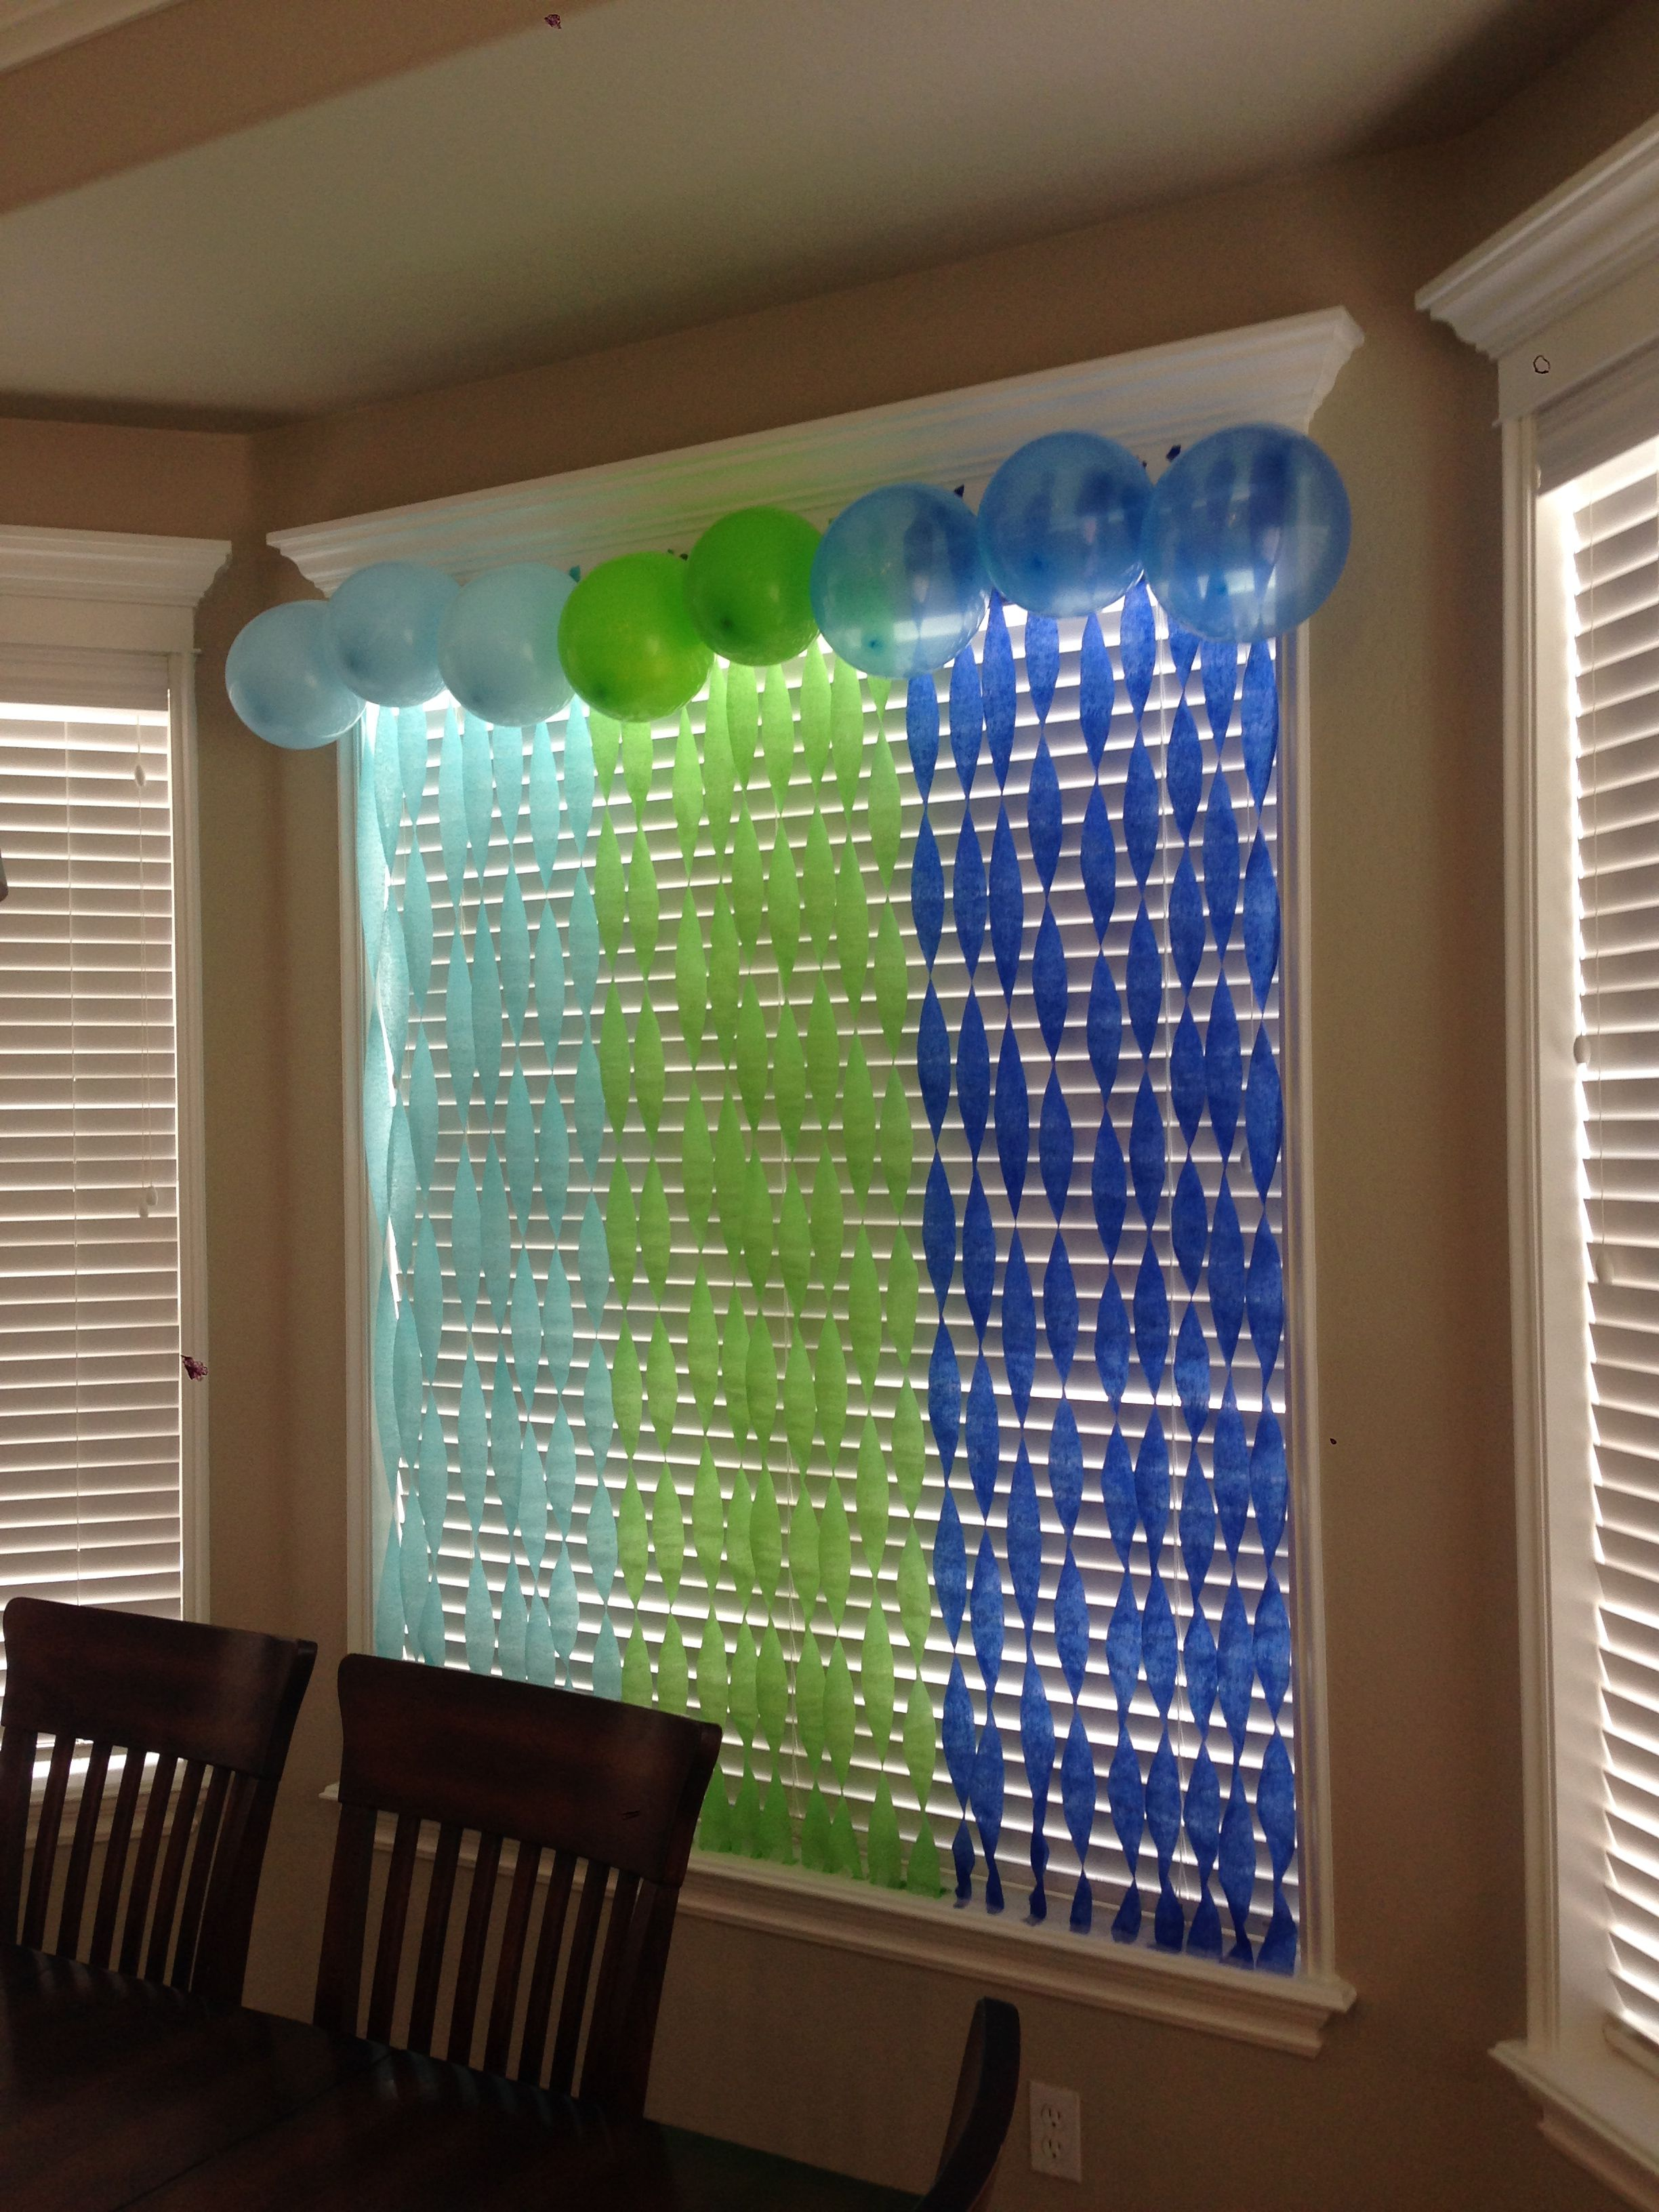 Hang Streamers On The Wall Or Window And Twist Them Then